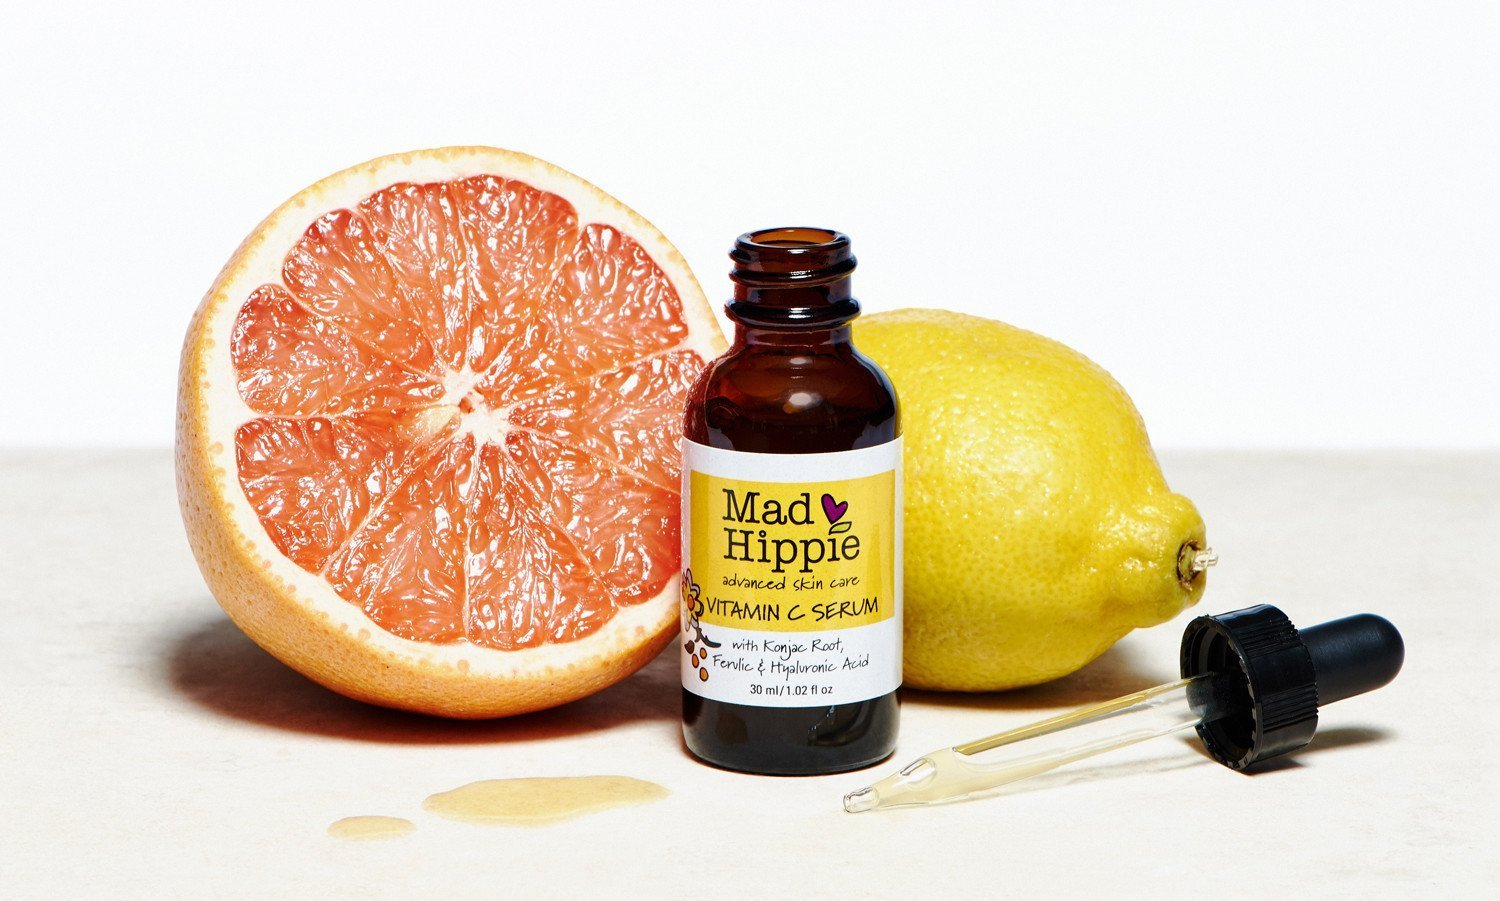 mad-hippie-vitamin-c-serum-02